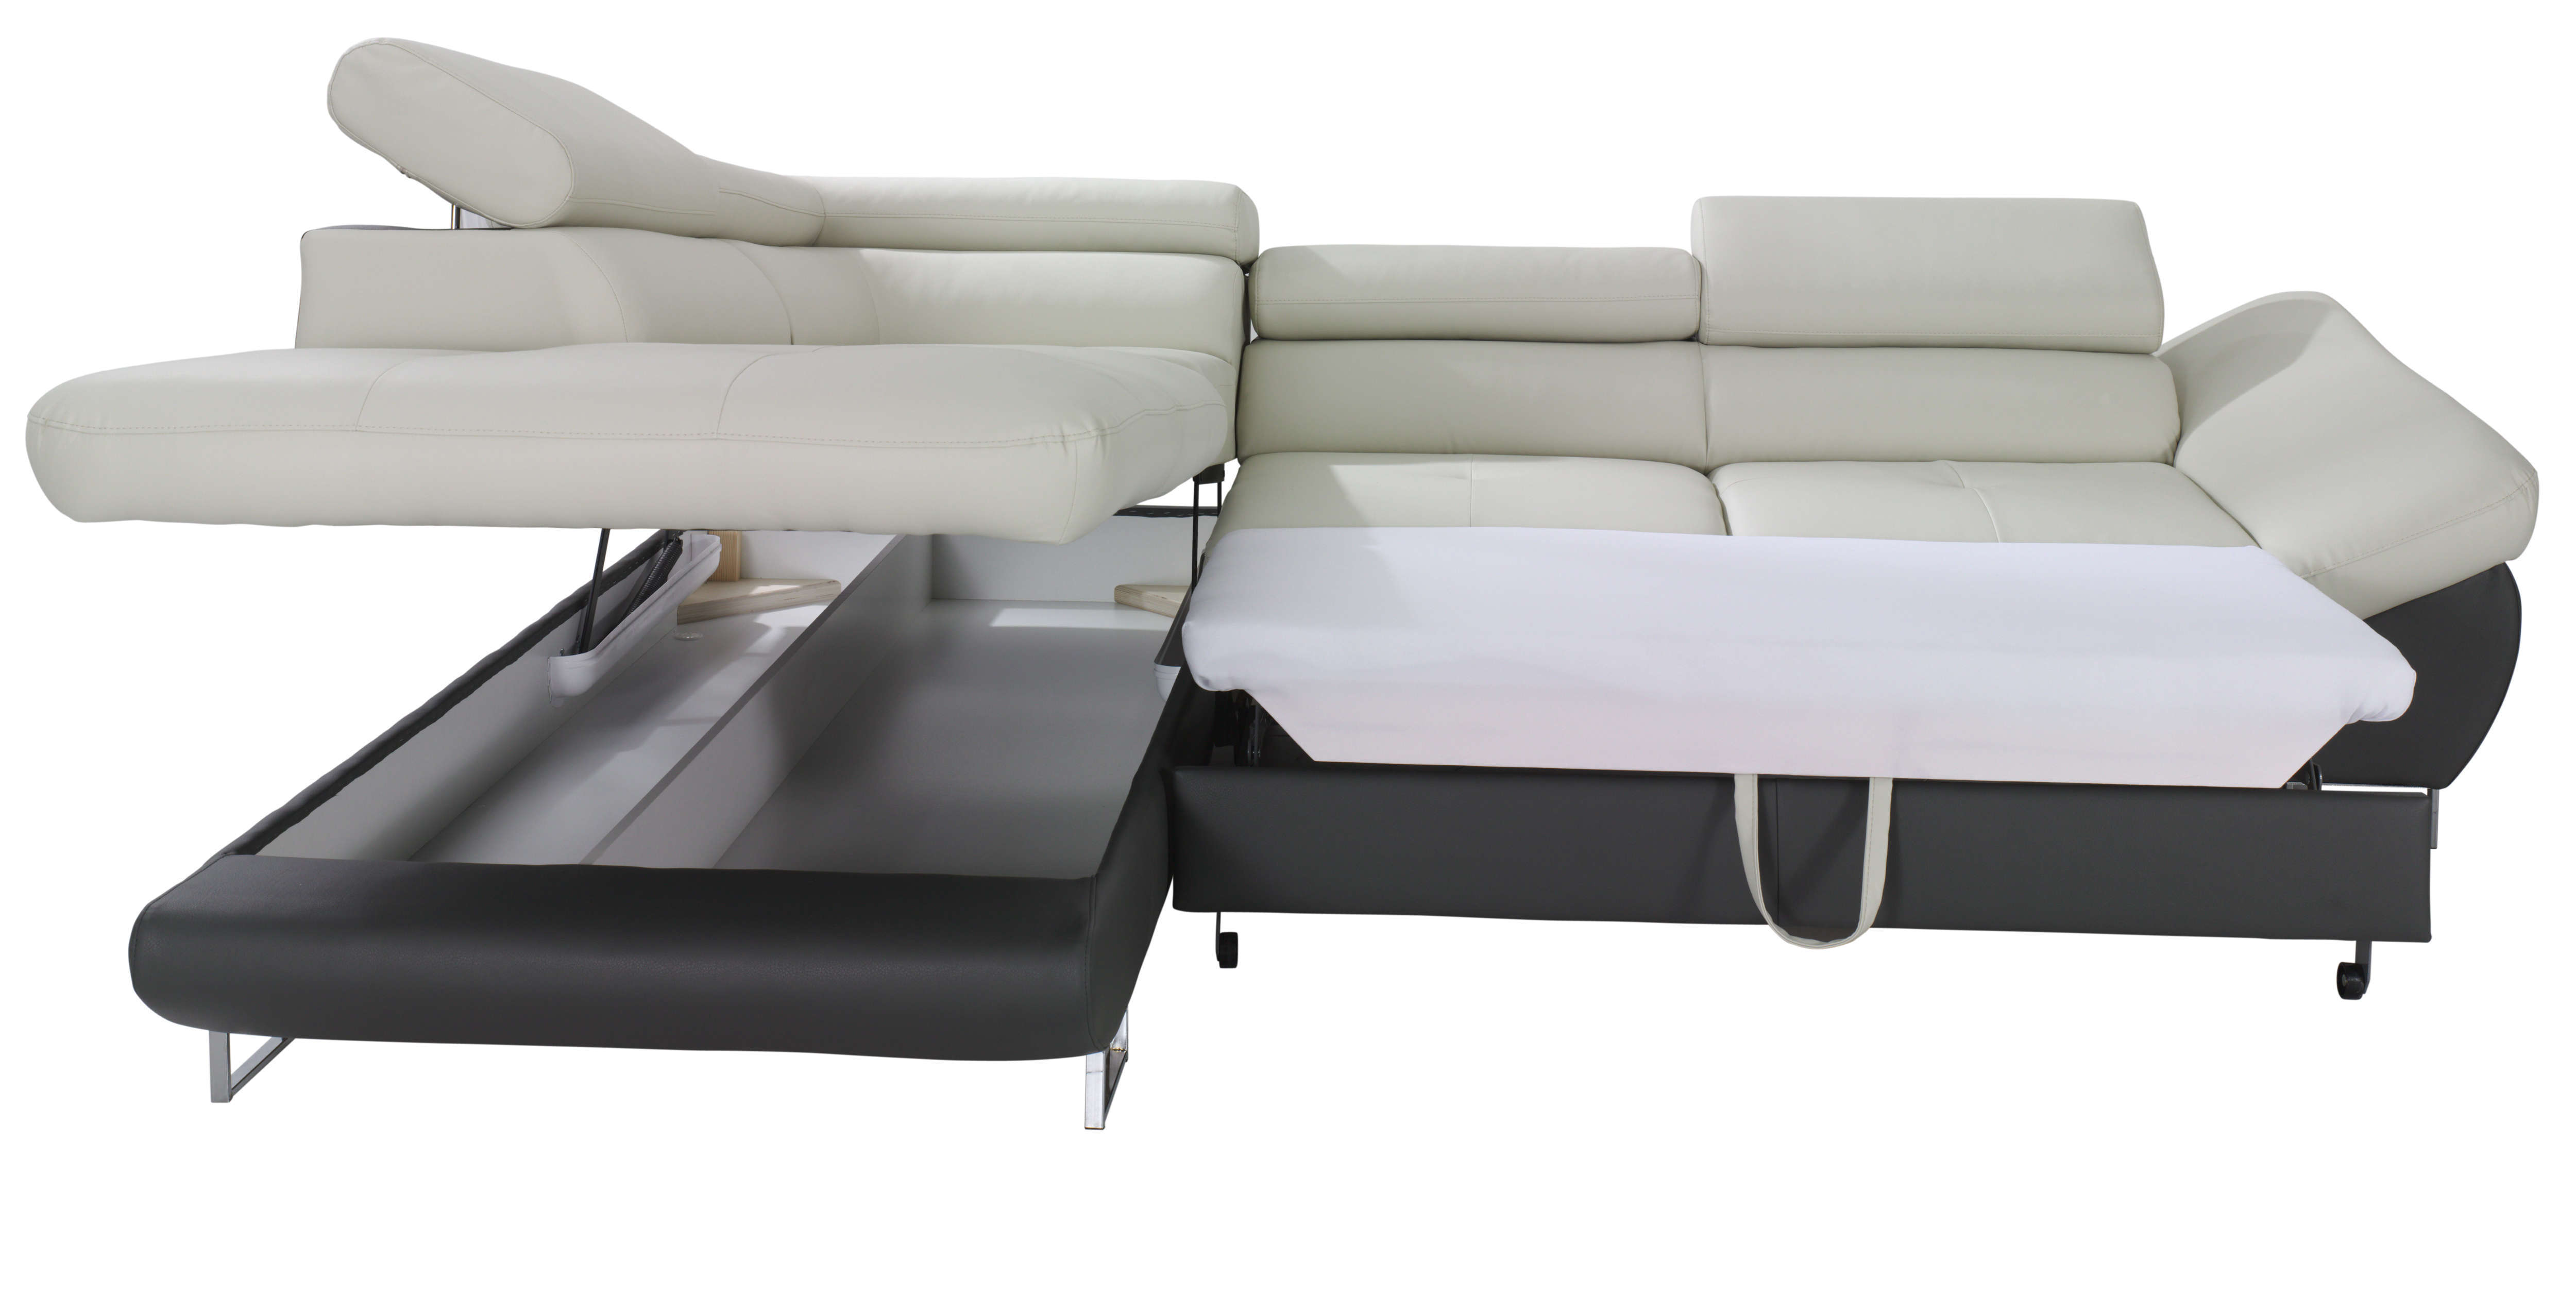 sleeper sofa sectional couch l shaped recliner india fabio with storage creative furniture